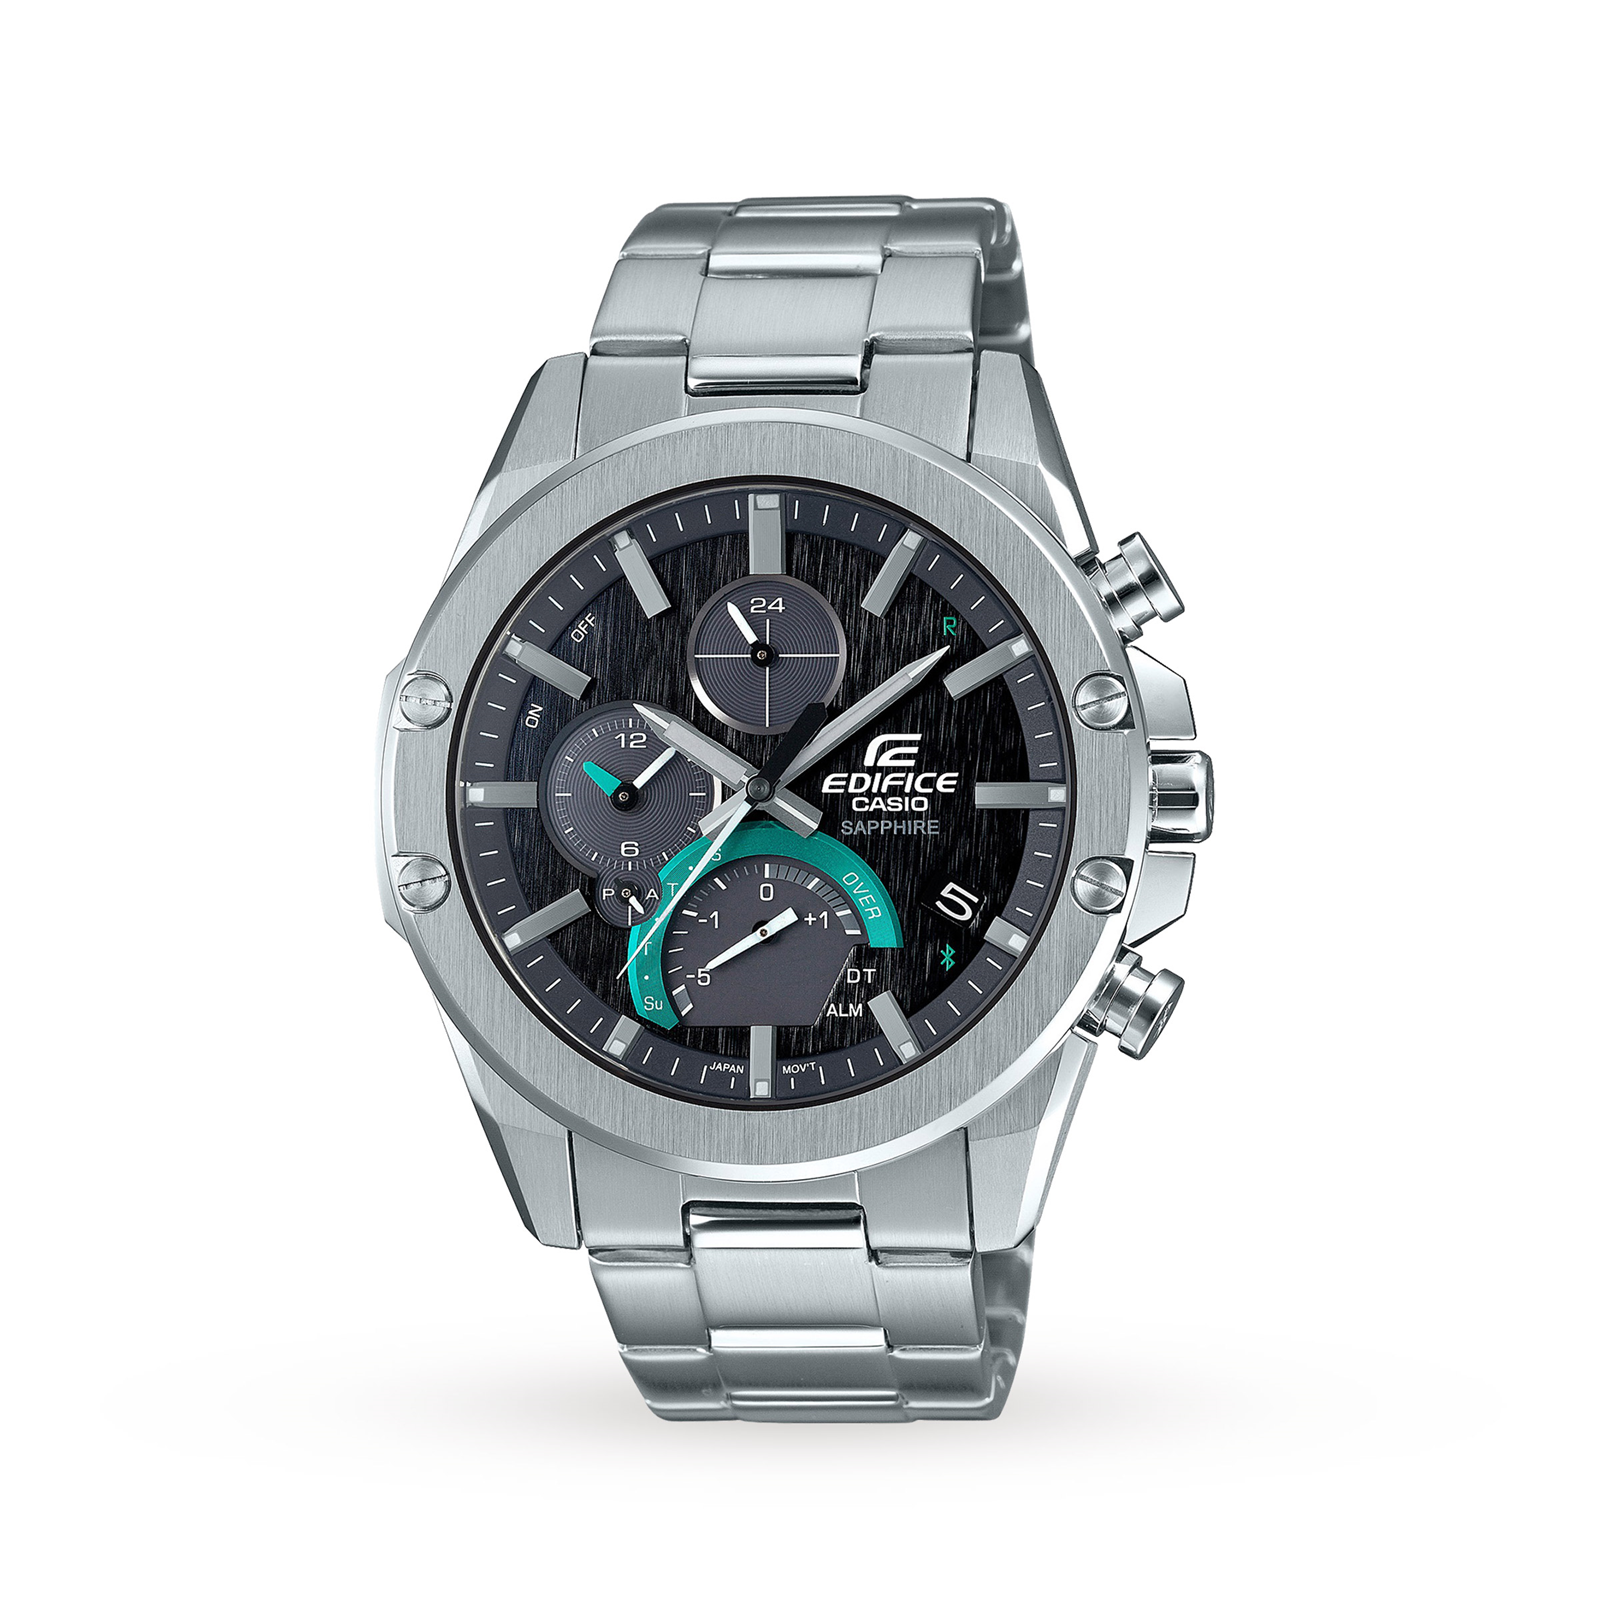 Casio Edifice Smartphone Link Ultra Thin Mens Watch